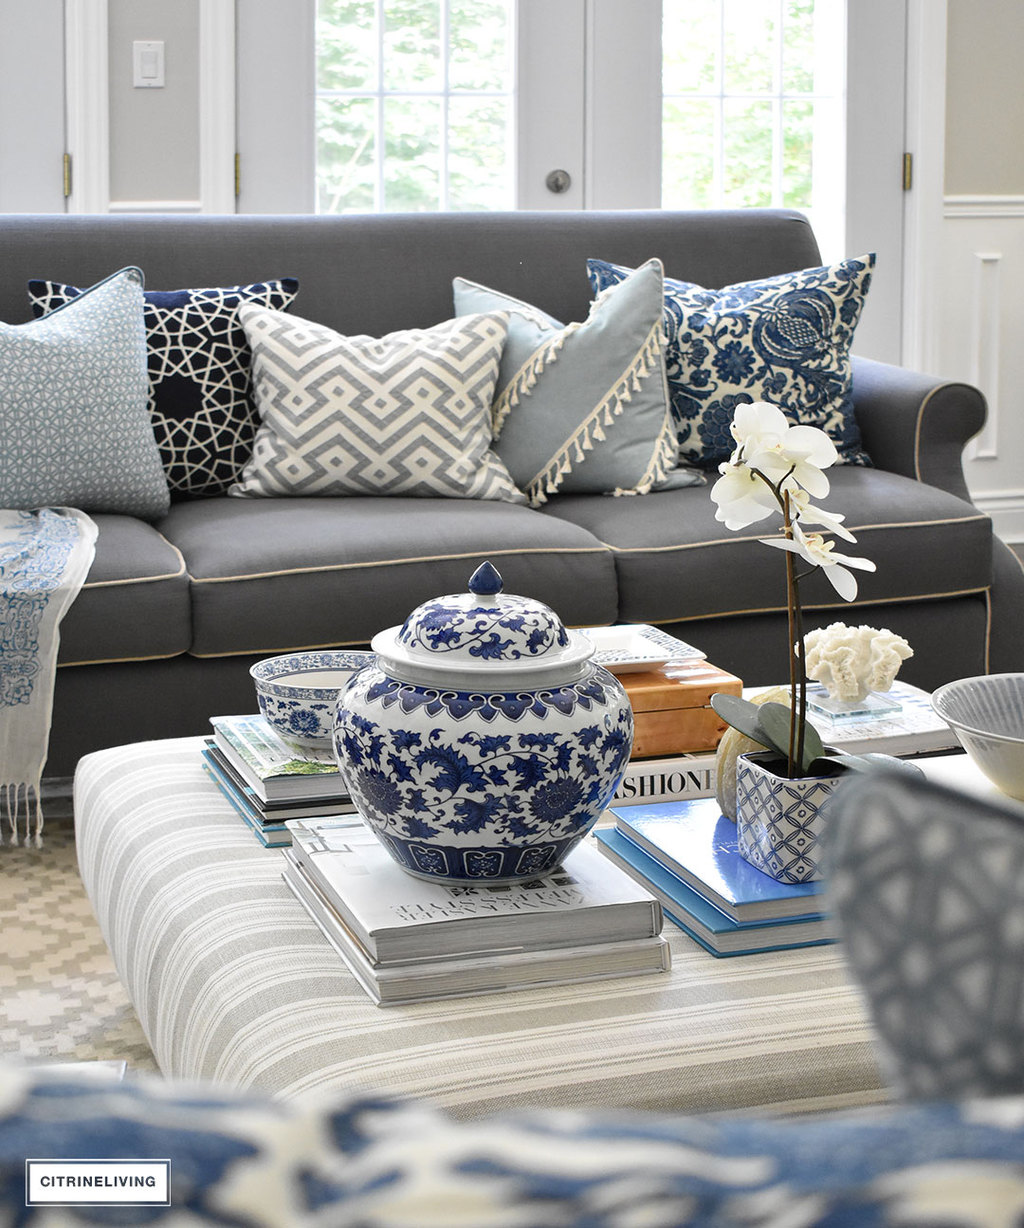 Make a style statement on your coffee table with stacks of books, decorative boxes and beautiful objects that you love.